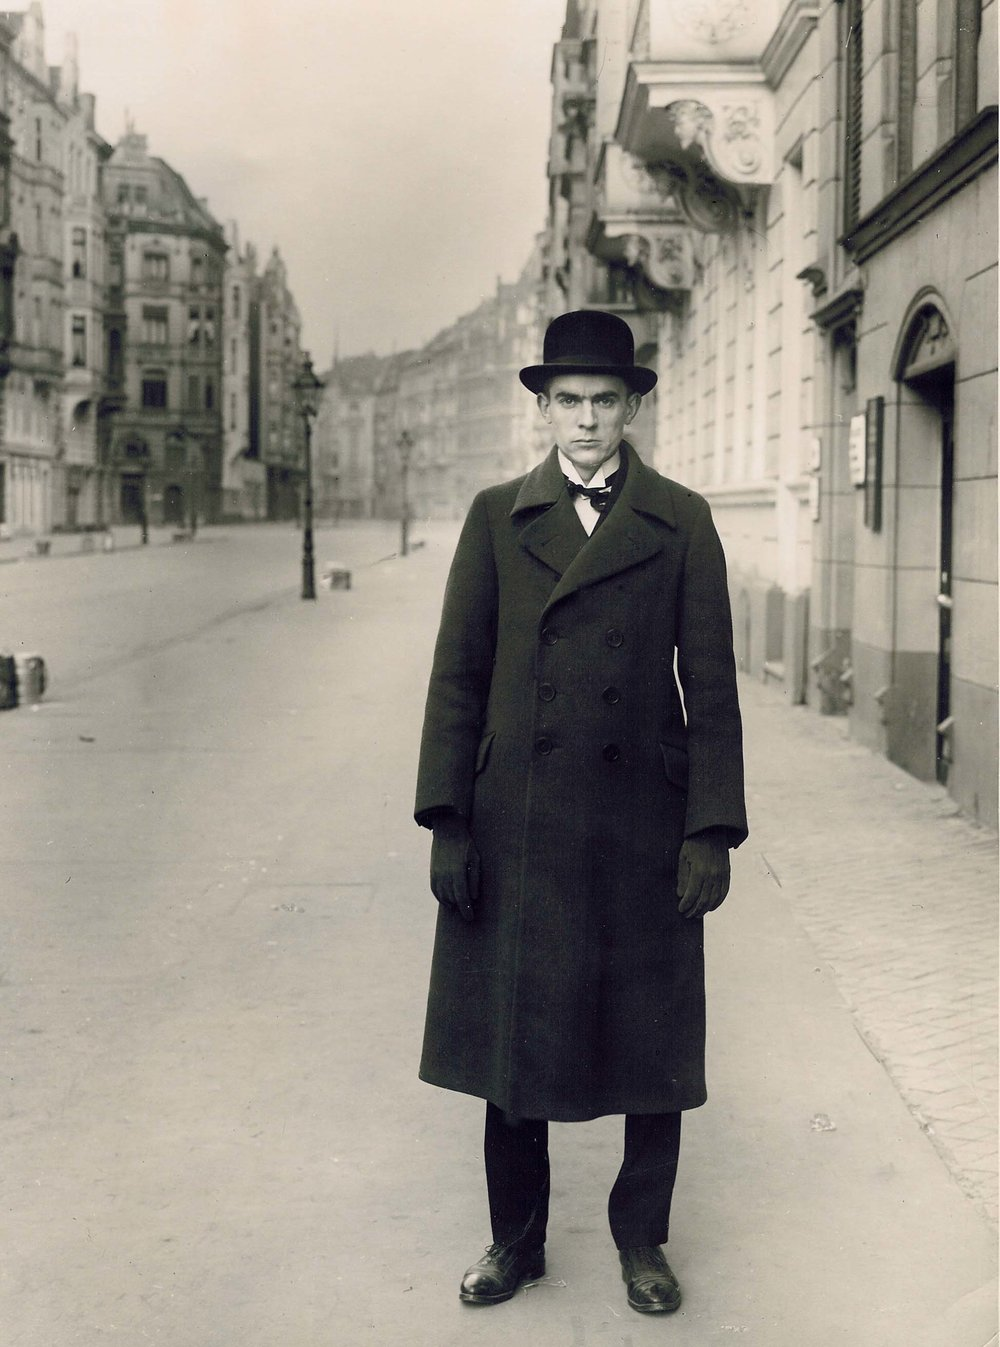 © Photograph by August Sander